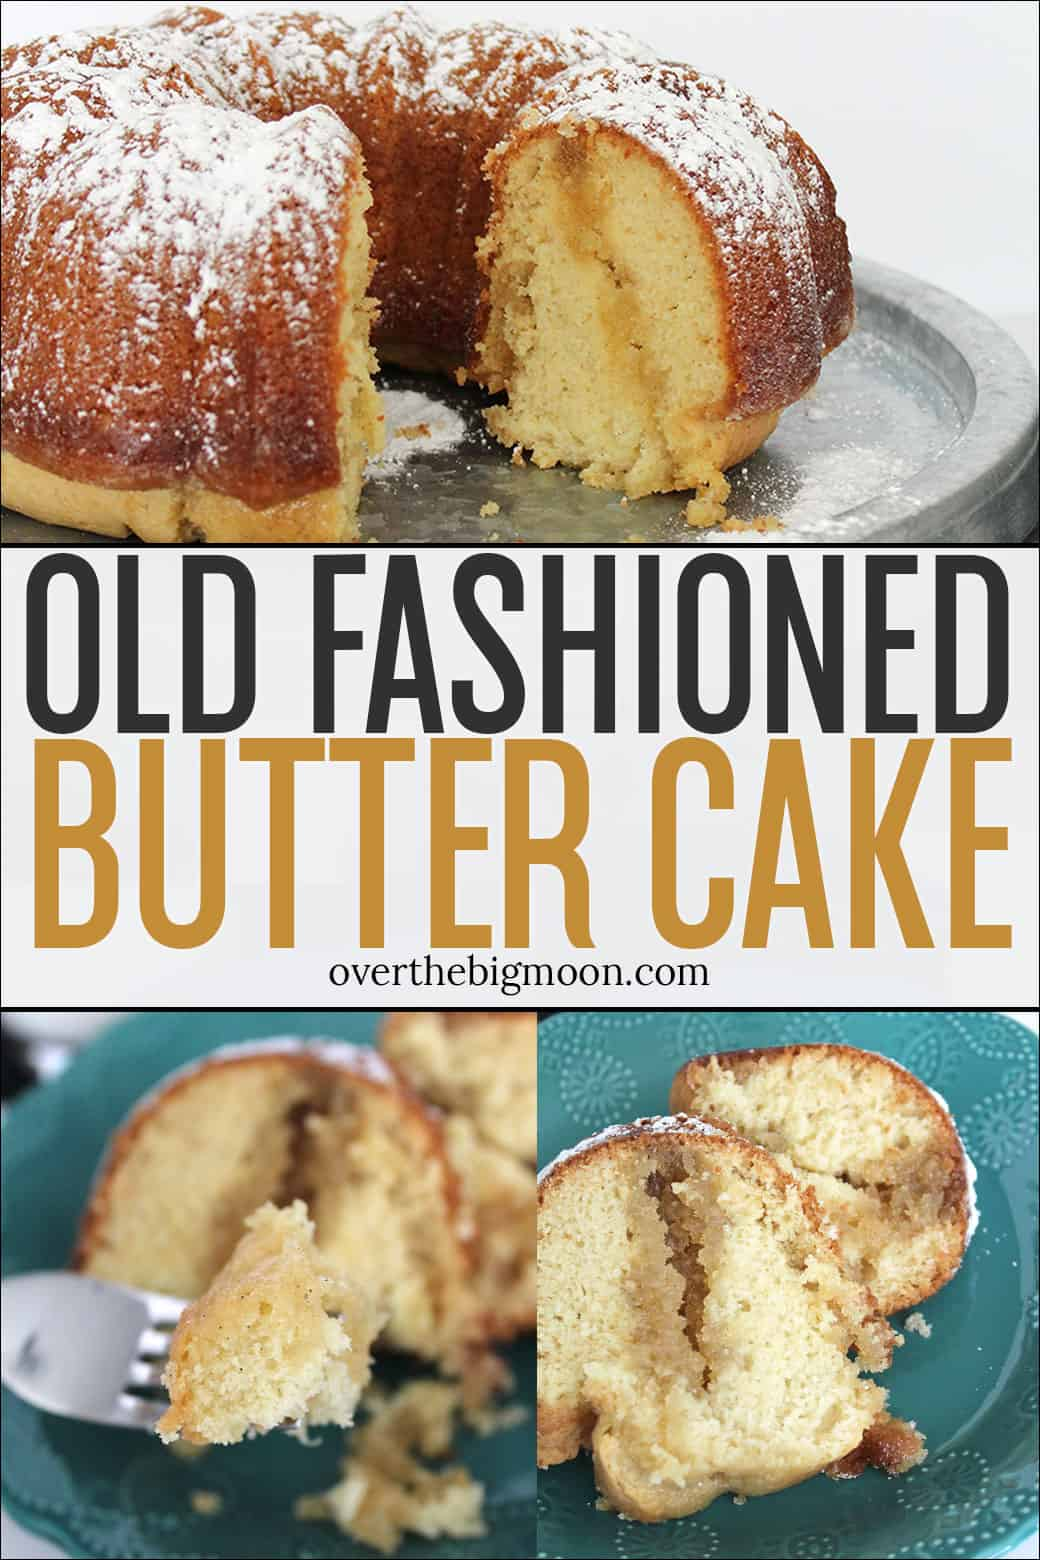 Old Fashioned Butter Cakeis a classic cake recipe that you'll pass down for generations! It's moist, full of flavor and a recipe you'll keep forever! No frosting is needed! From overthebigmoon.com!